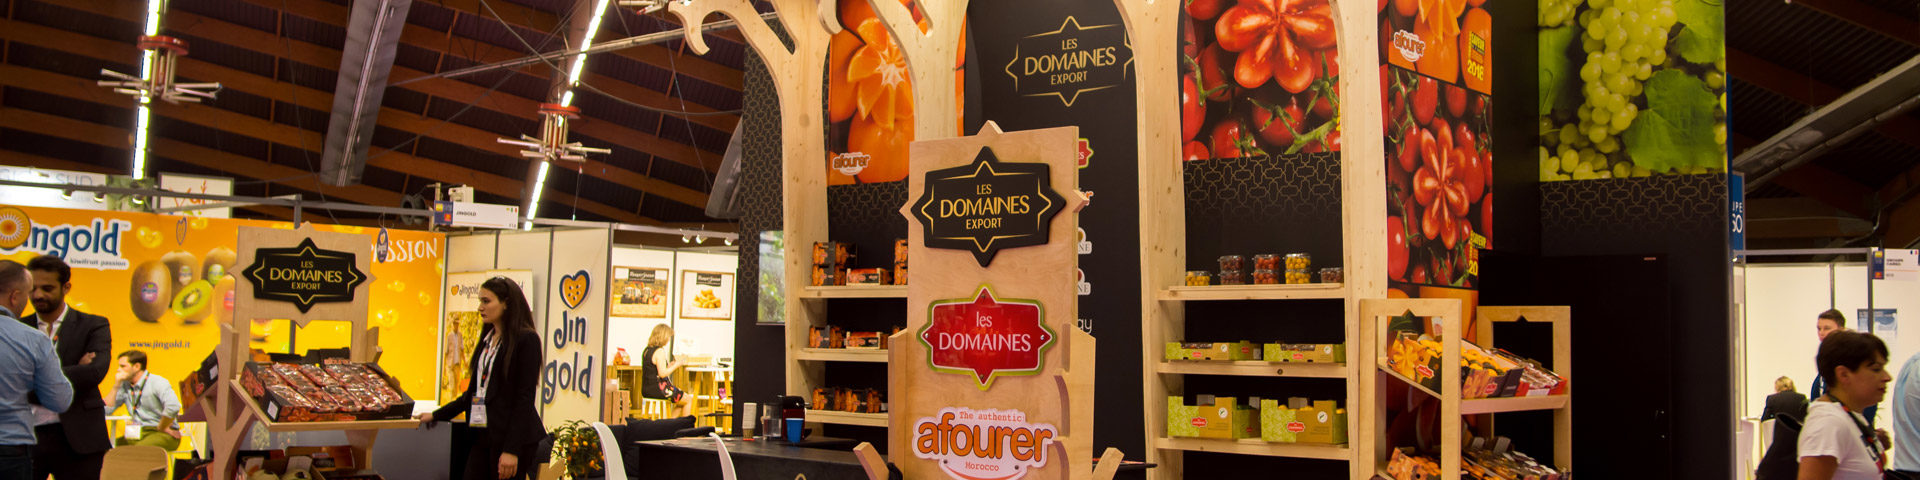 Les Domaines Agricoles, attending the major trade fairs